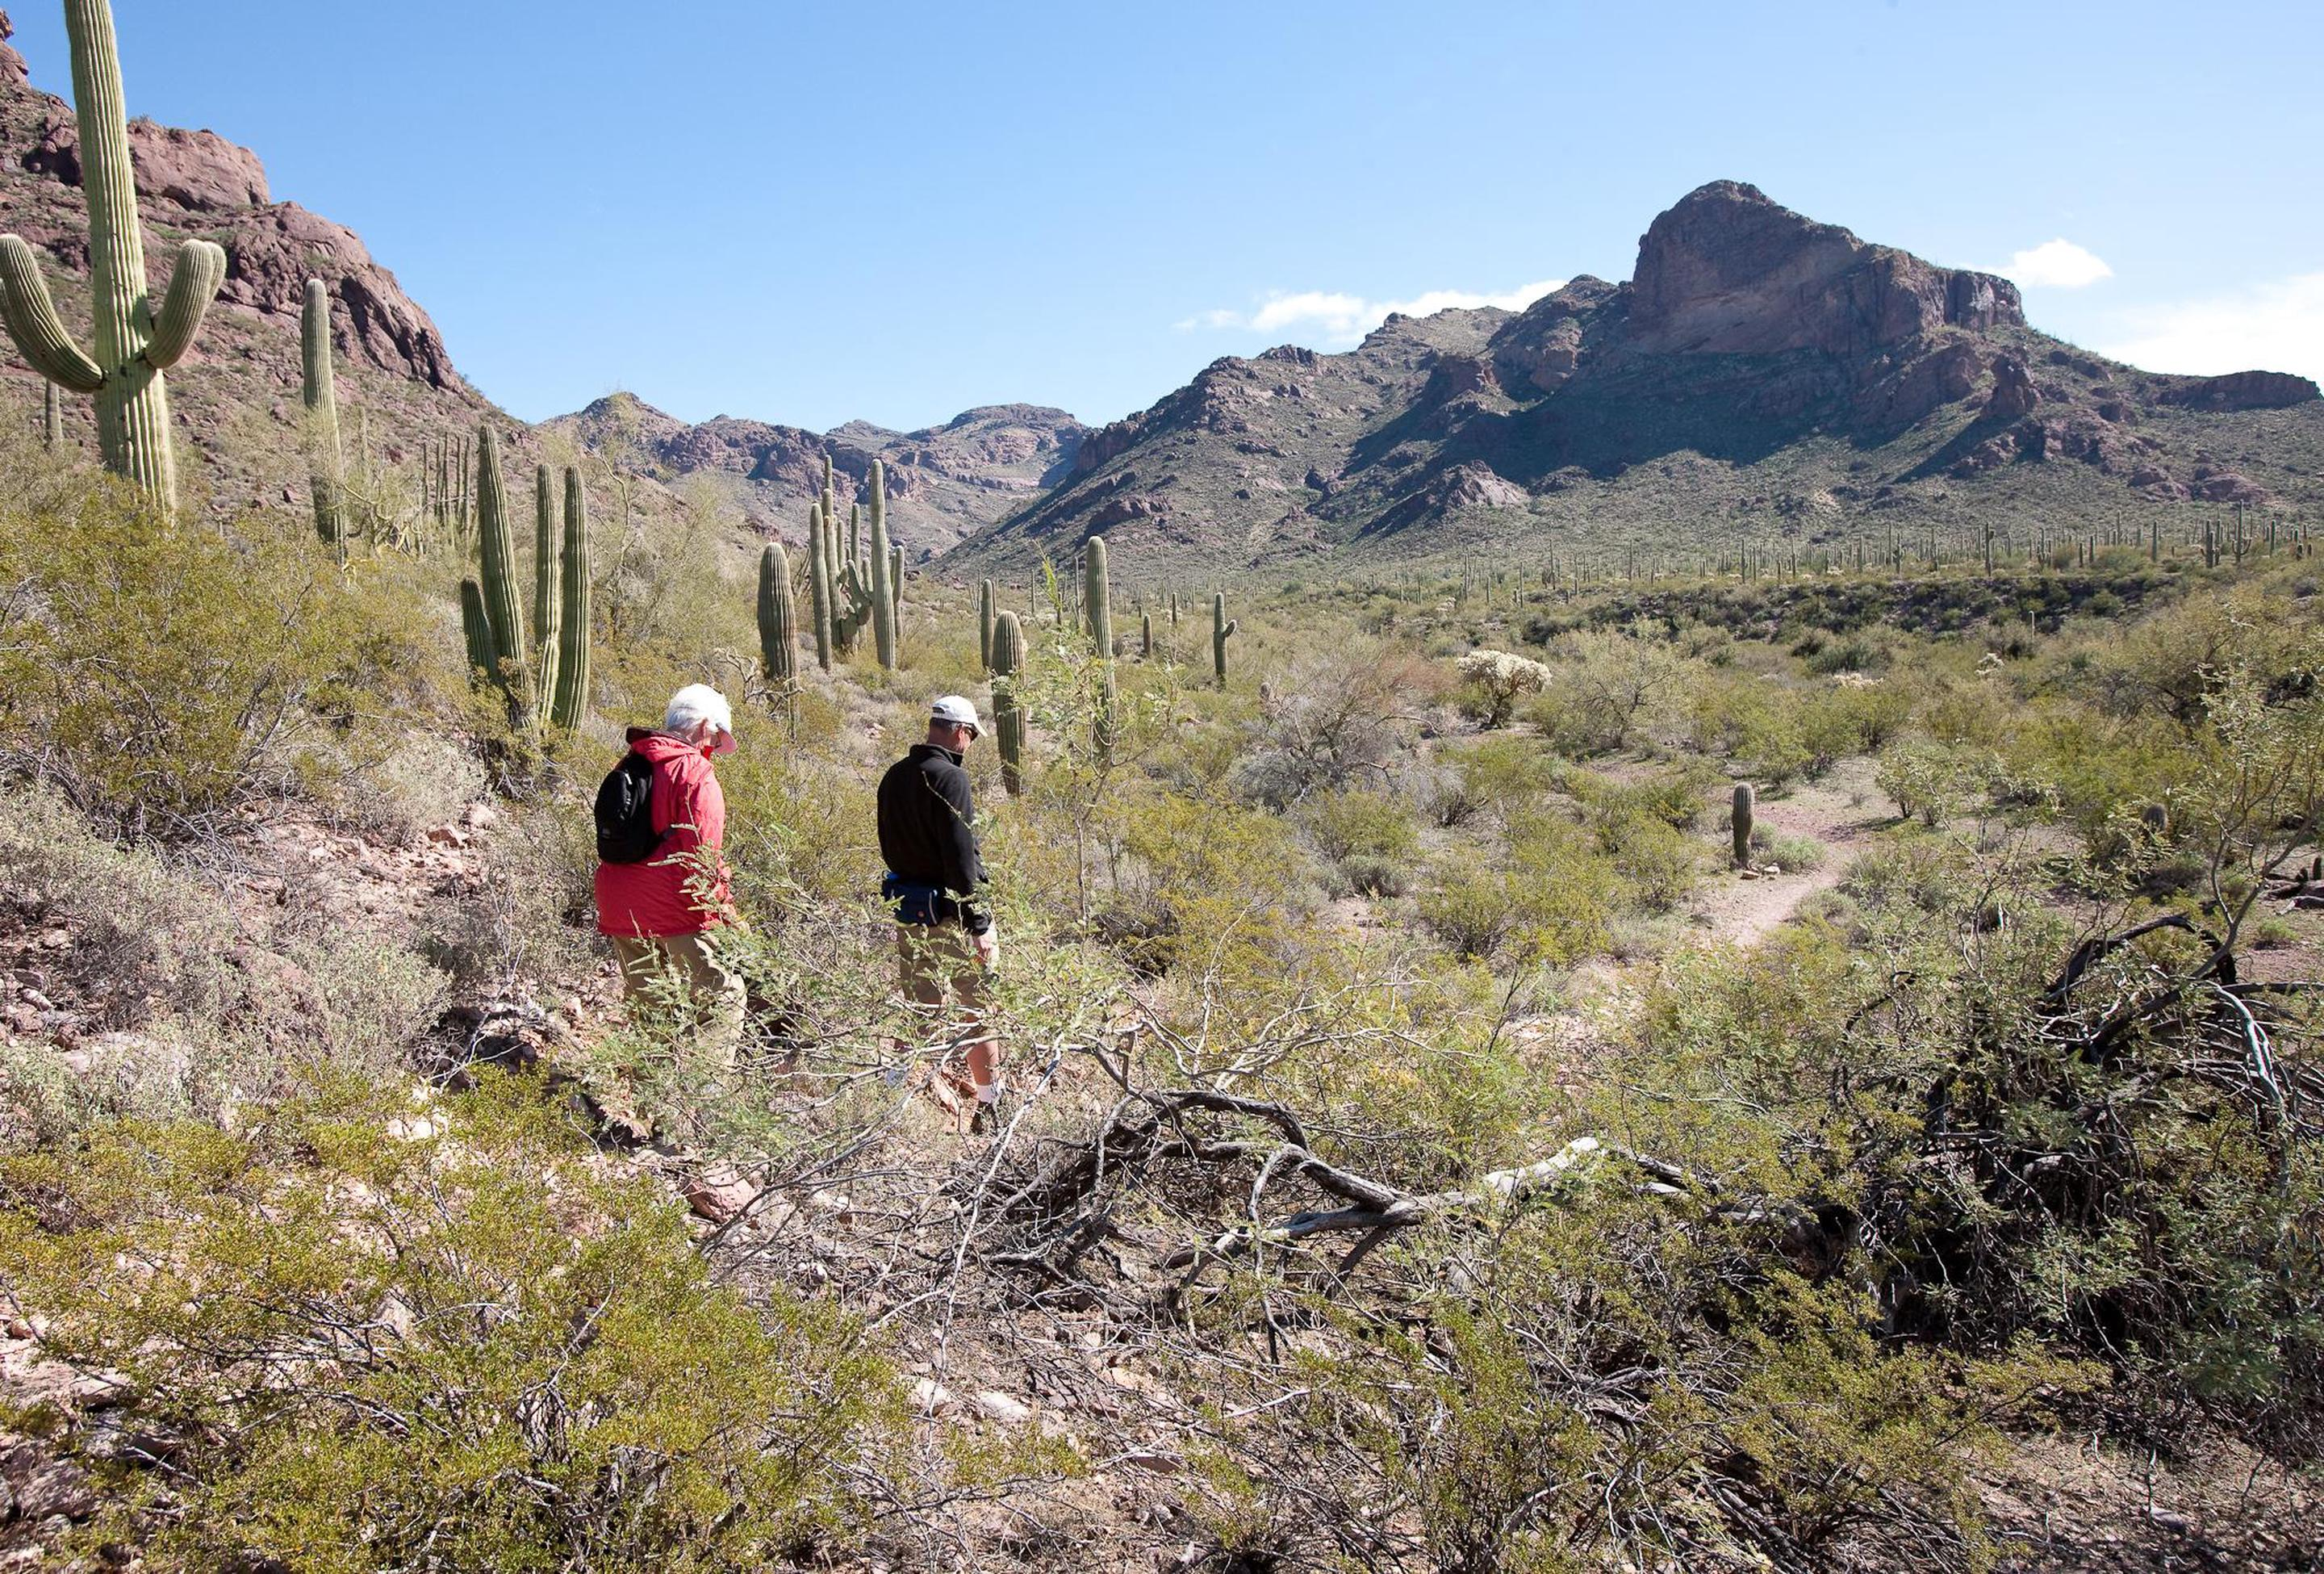 Hiking Alamo CanyonFrom the campground you can access the picturesque Alamo Canyon trail.